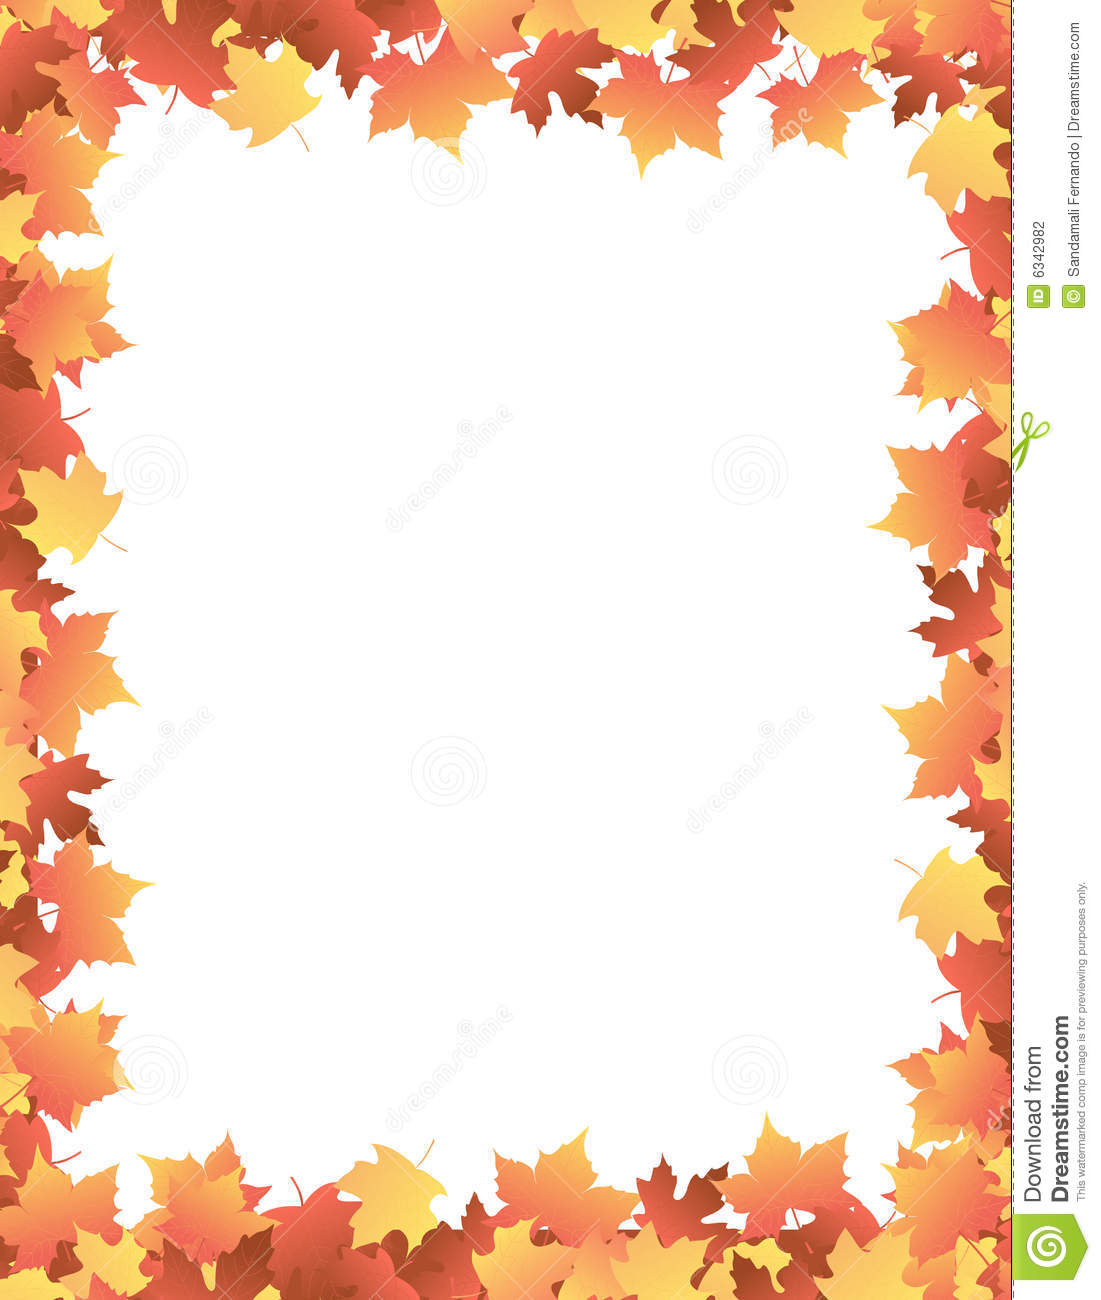 Fall leaf borders clipart free picture 22+ Fall Borders Clip Art Free | ClipartLook picture